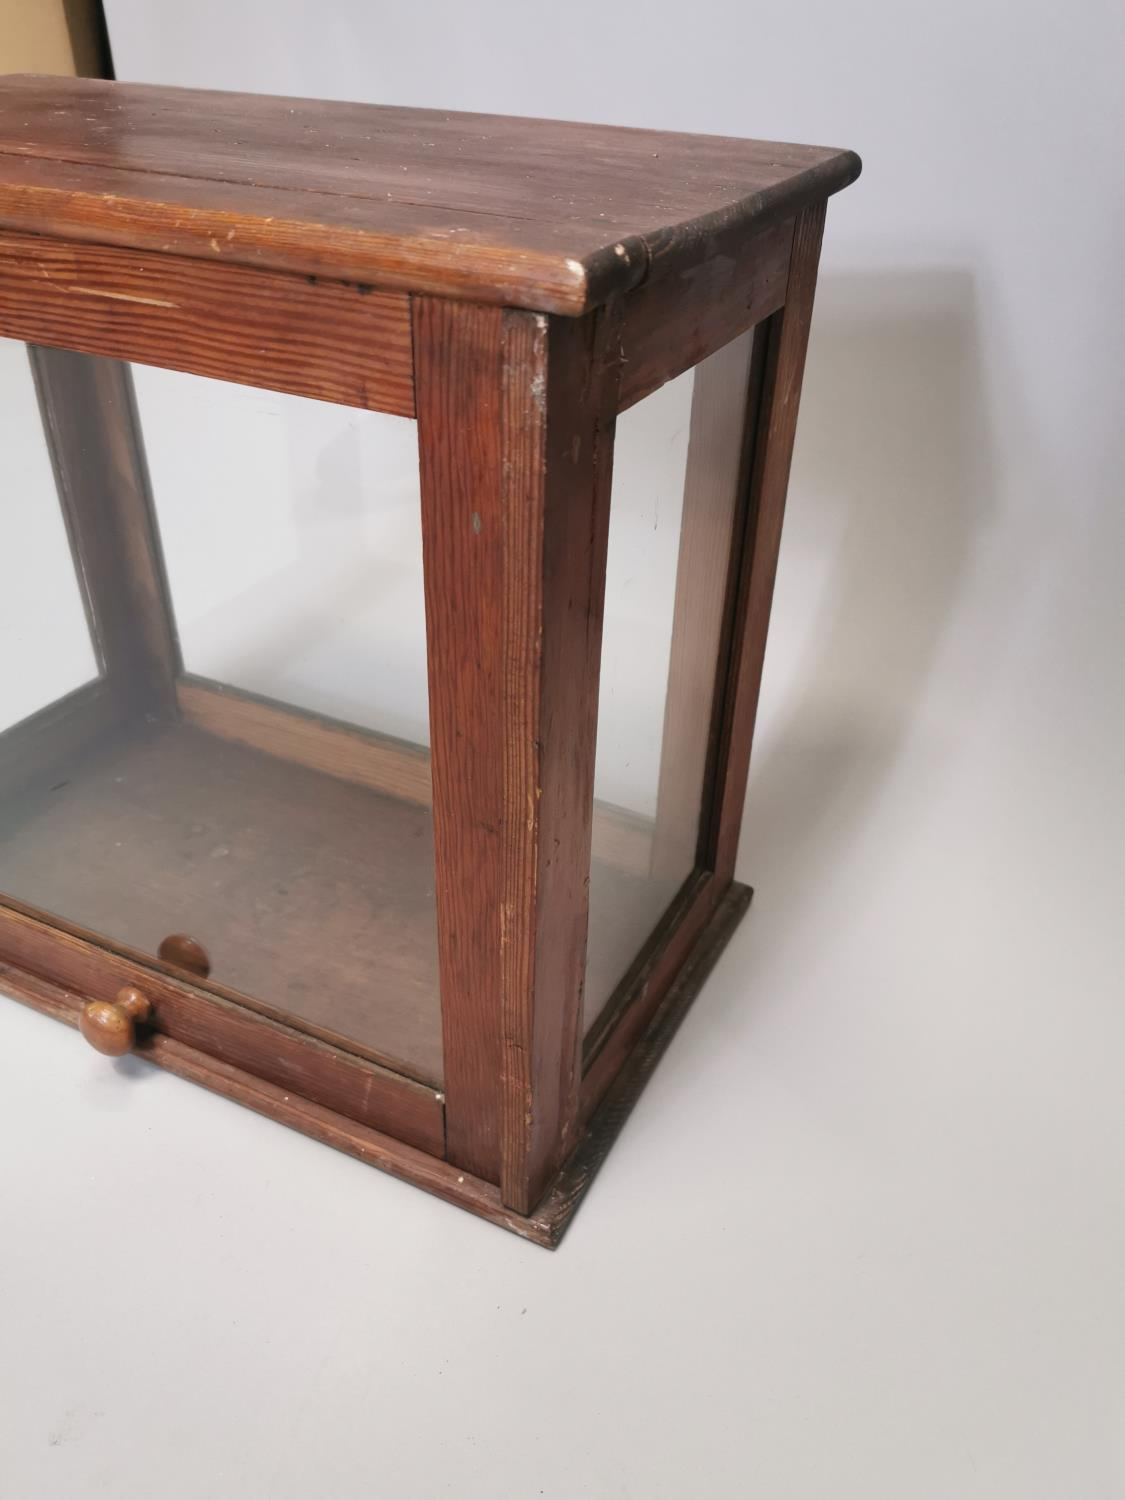 Early 20th. C. glazed pine display cabinet - Image 7 of 7